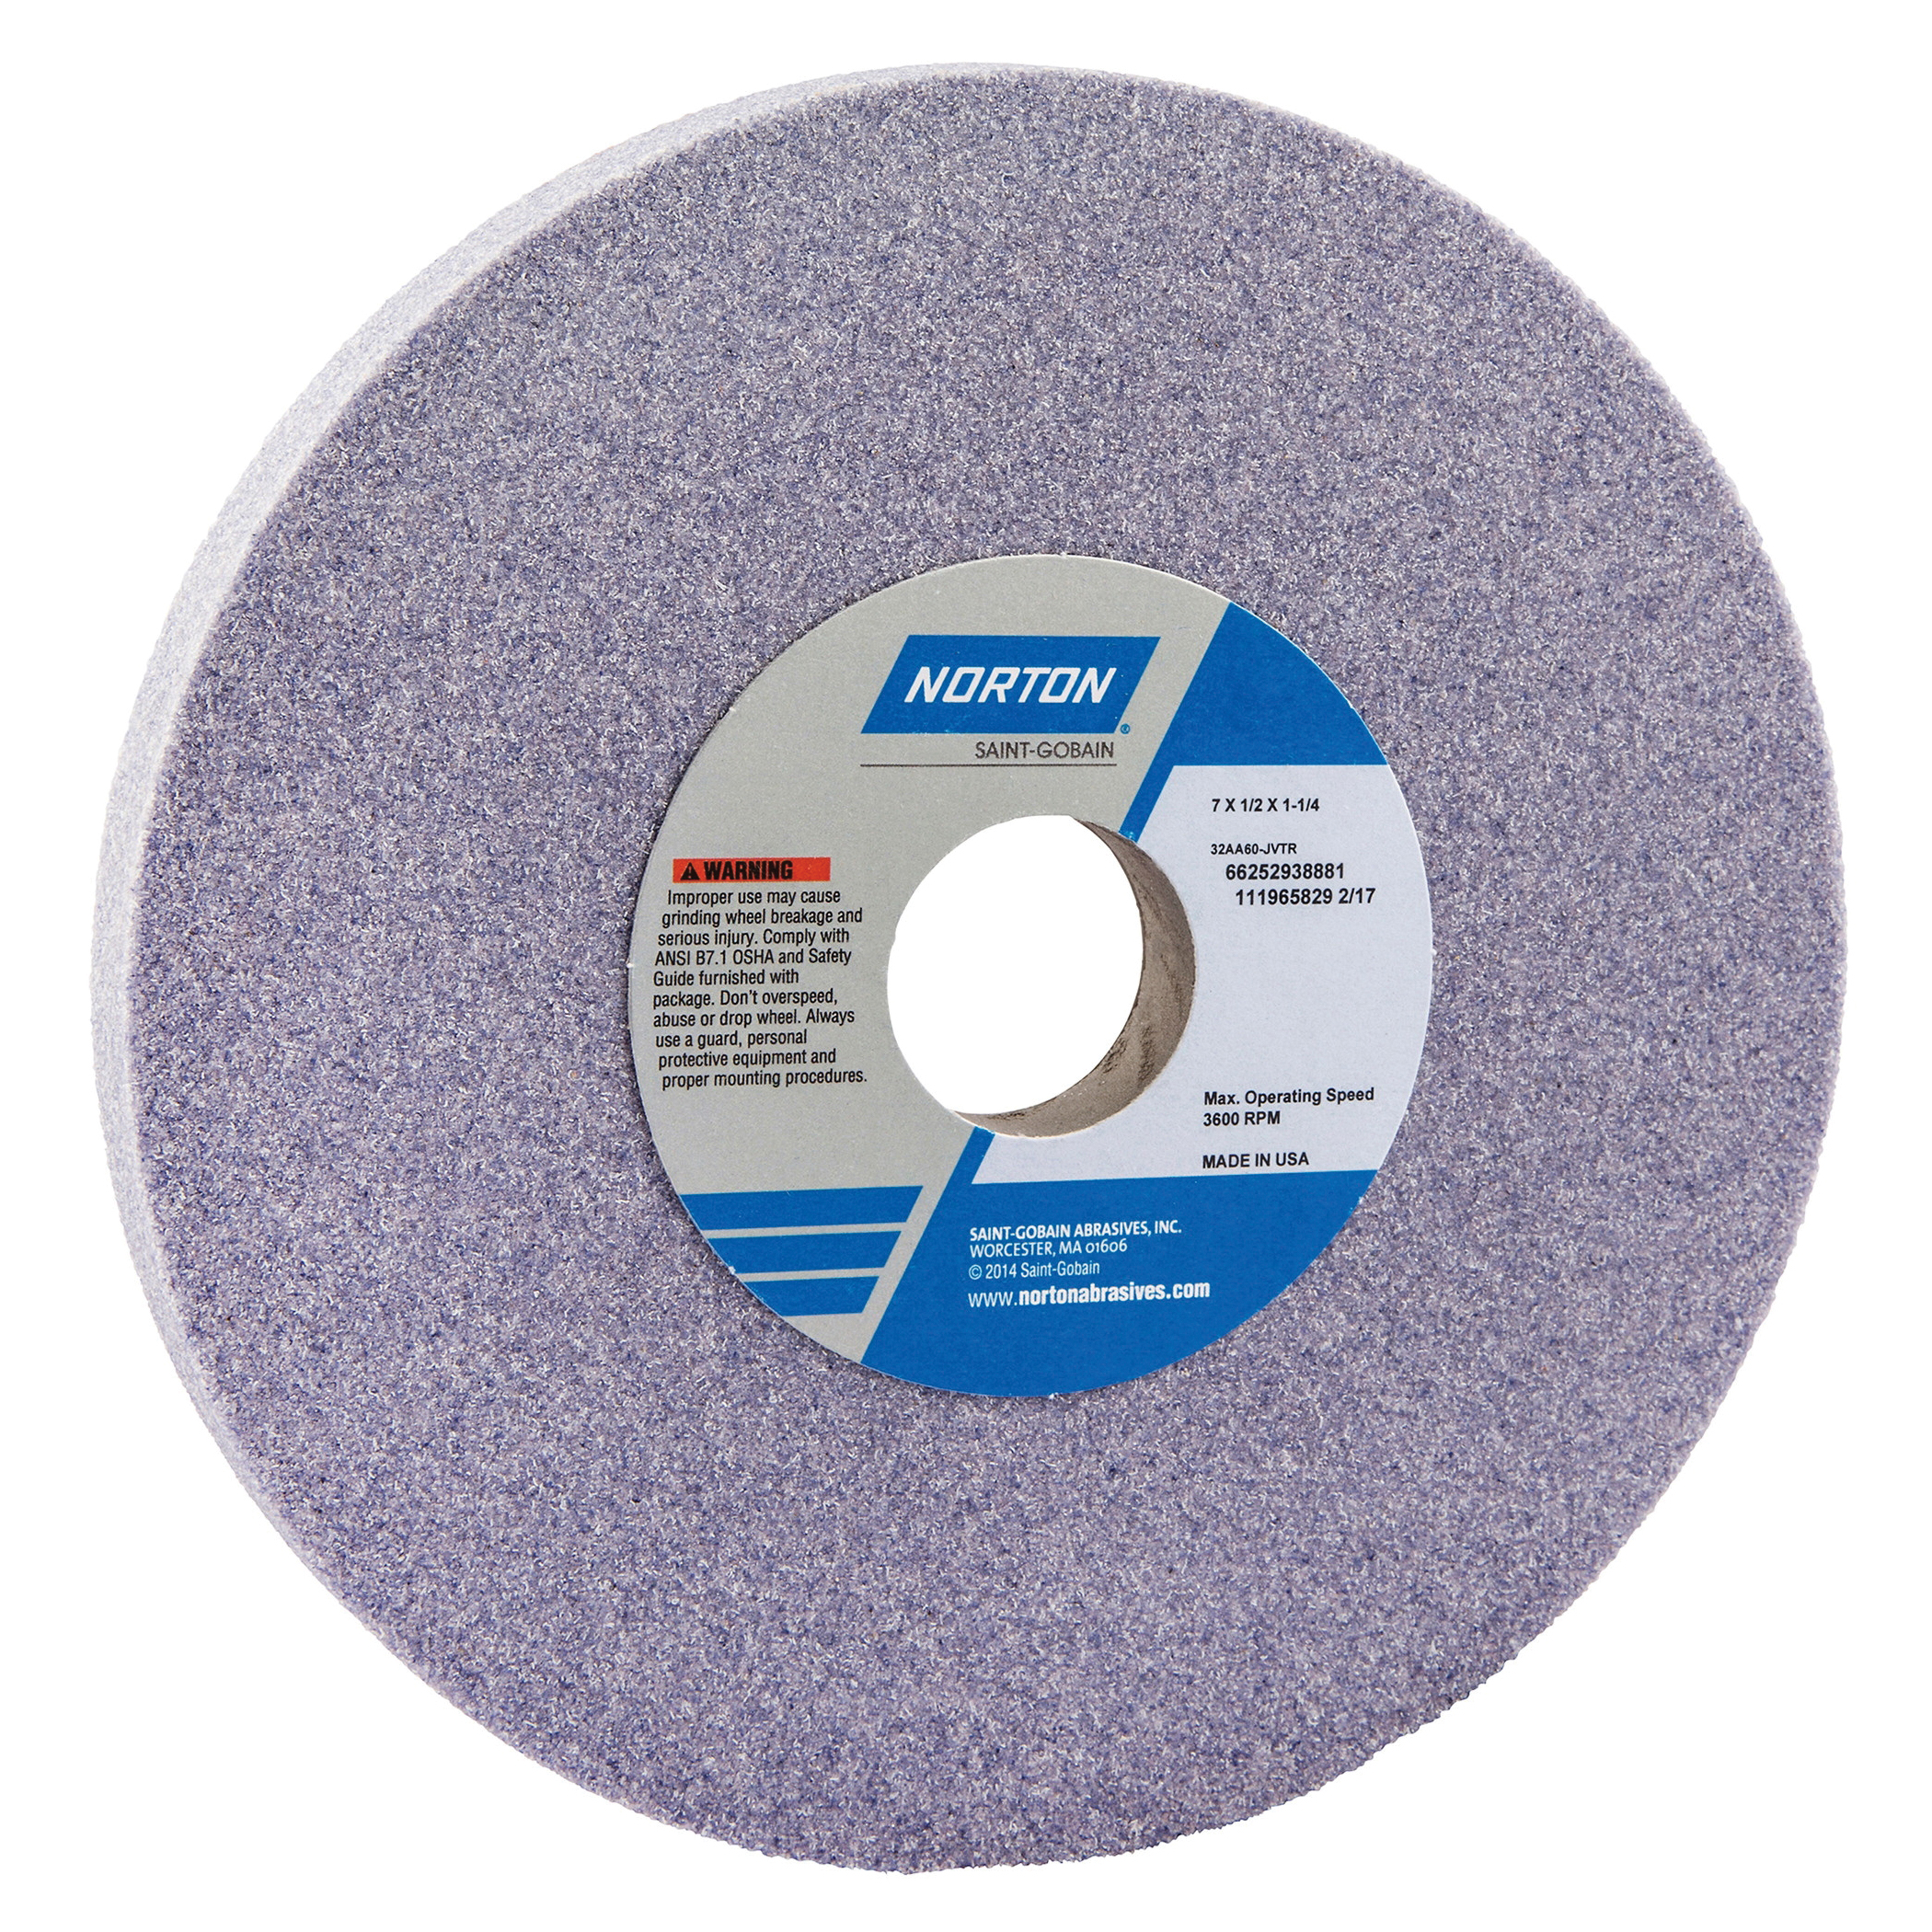 Norton® 66252938881 32AA Straight Toolroom Wheel, 7 in Dia x 1/2 in THK, 1-1/4 in Center Hole, 60 Grit, Aluminum Oxide Abrasive